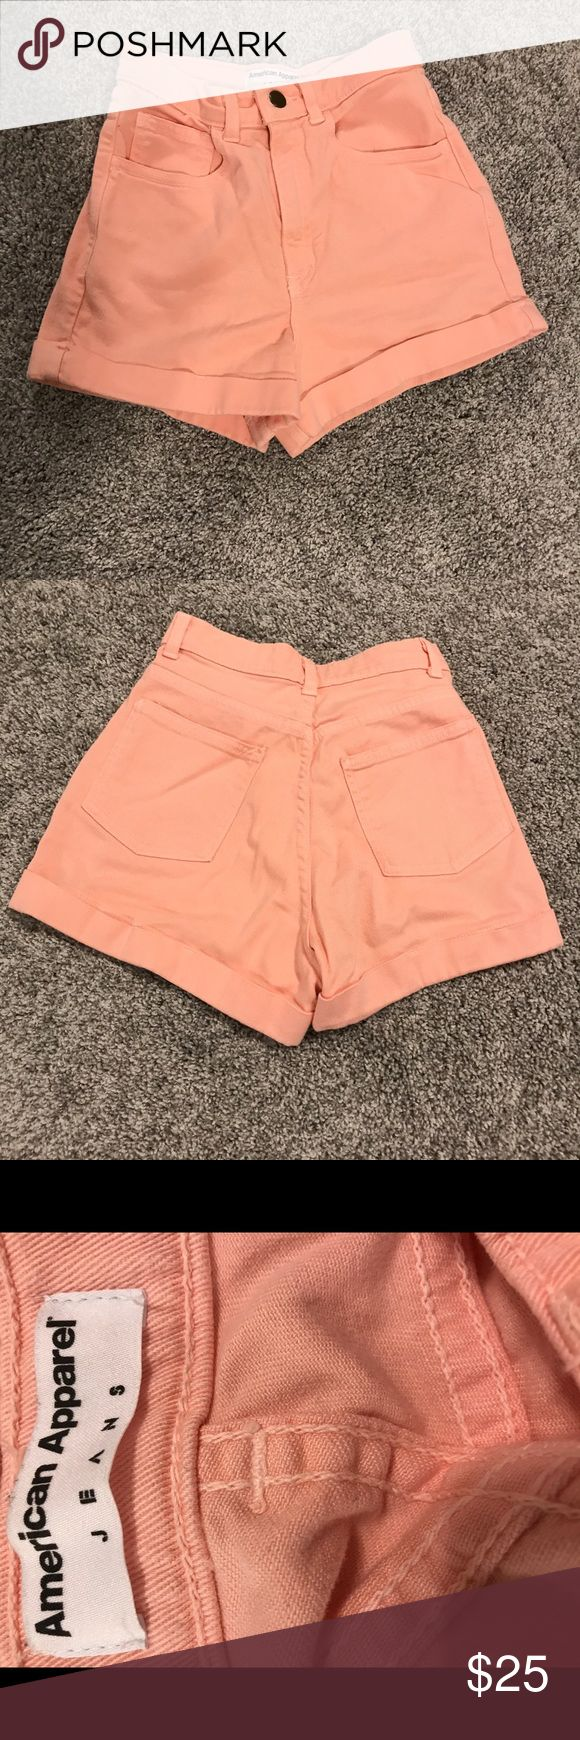 American Apparel High Waisted Coral Shorts 26/27 American Apparel High Waisted Coral Shorts. Size 26/27. Perfect shorts but I already have their high waisted shorts in a good 7 other colors. Never worn. American Apparel Shorts Jean Shorts